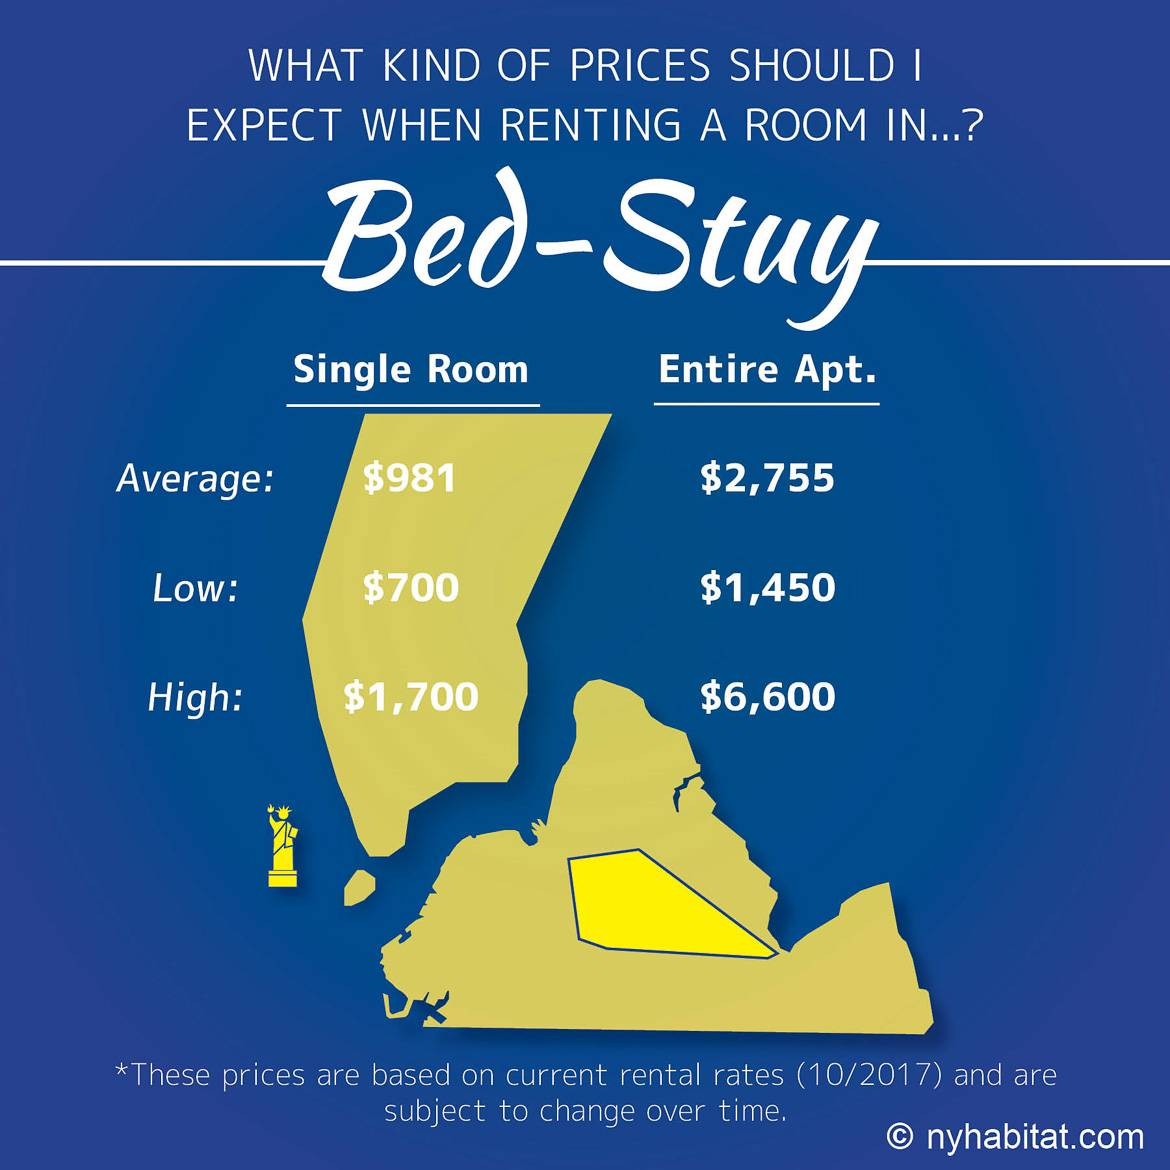 Infographic comparison of rent prices for apartments and rooms for rent in Bed-Stuy, Brooklyn